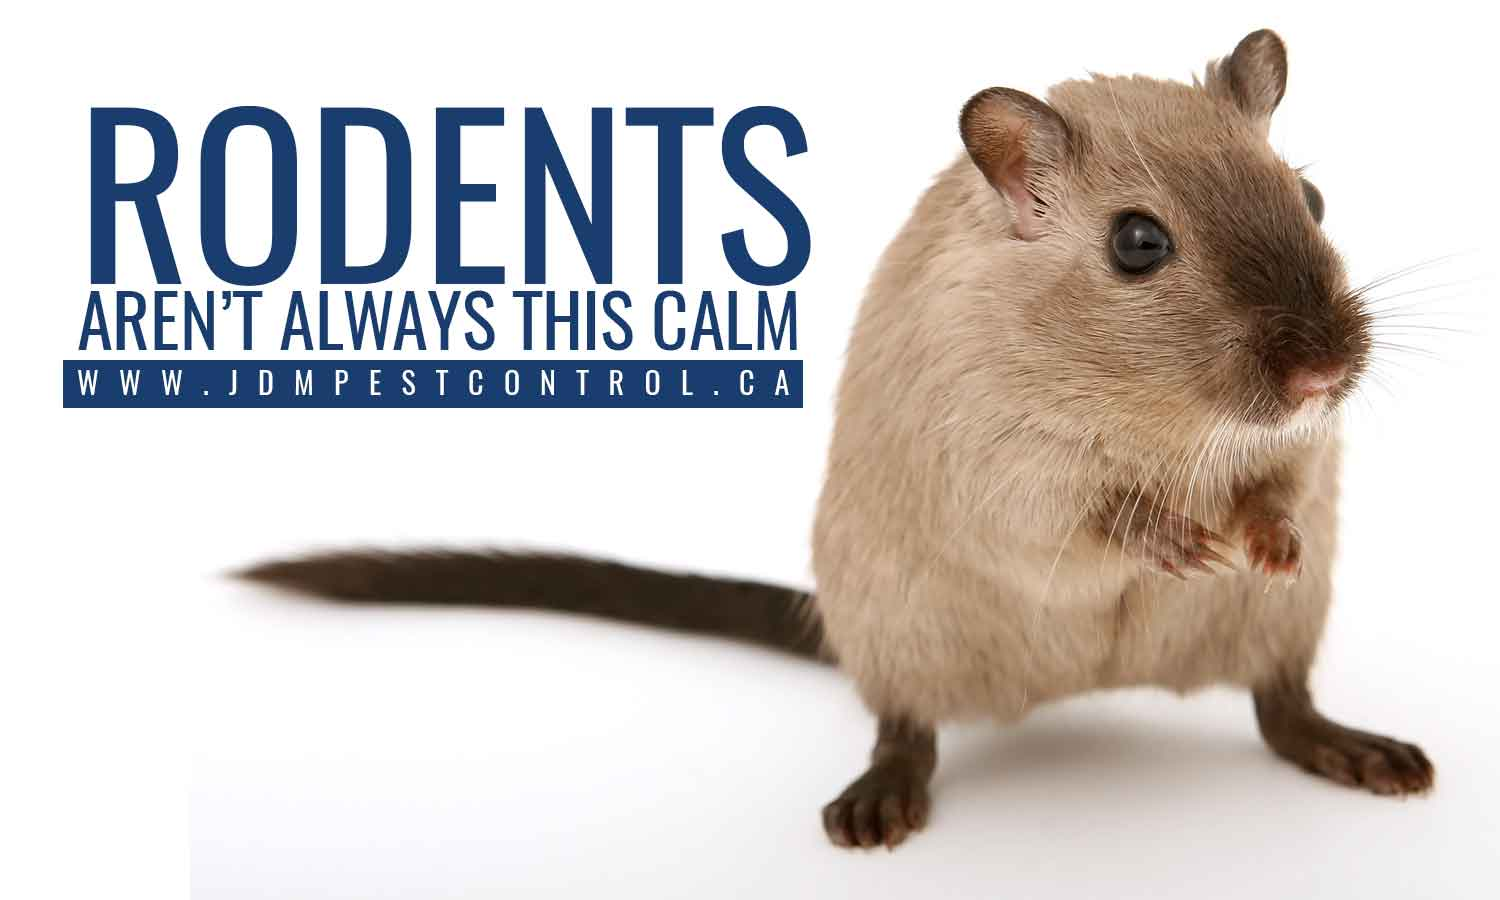 Rodents aren't always this calm